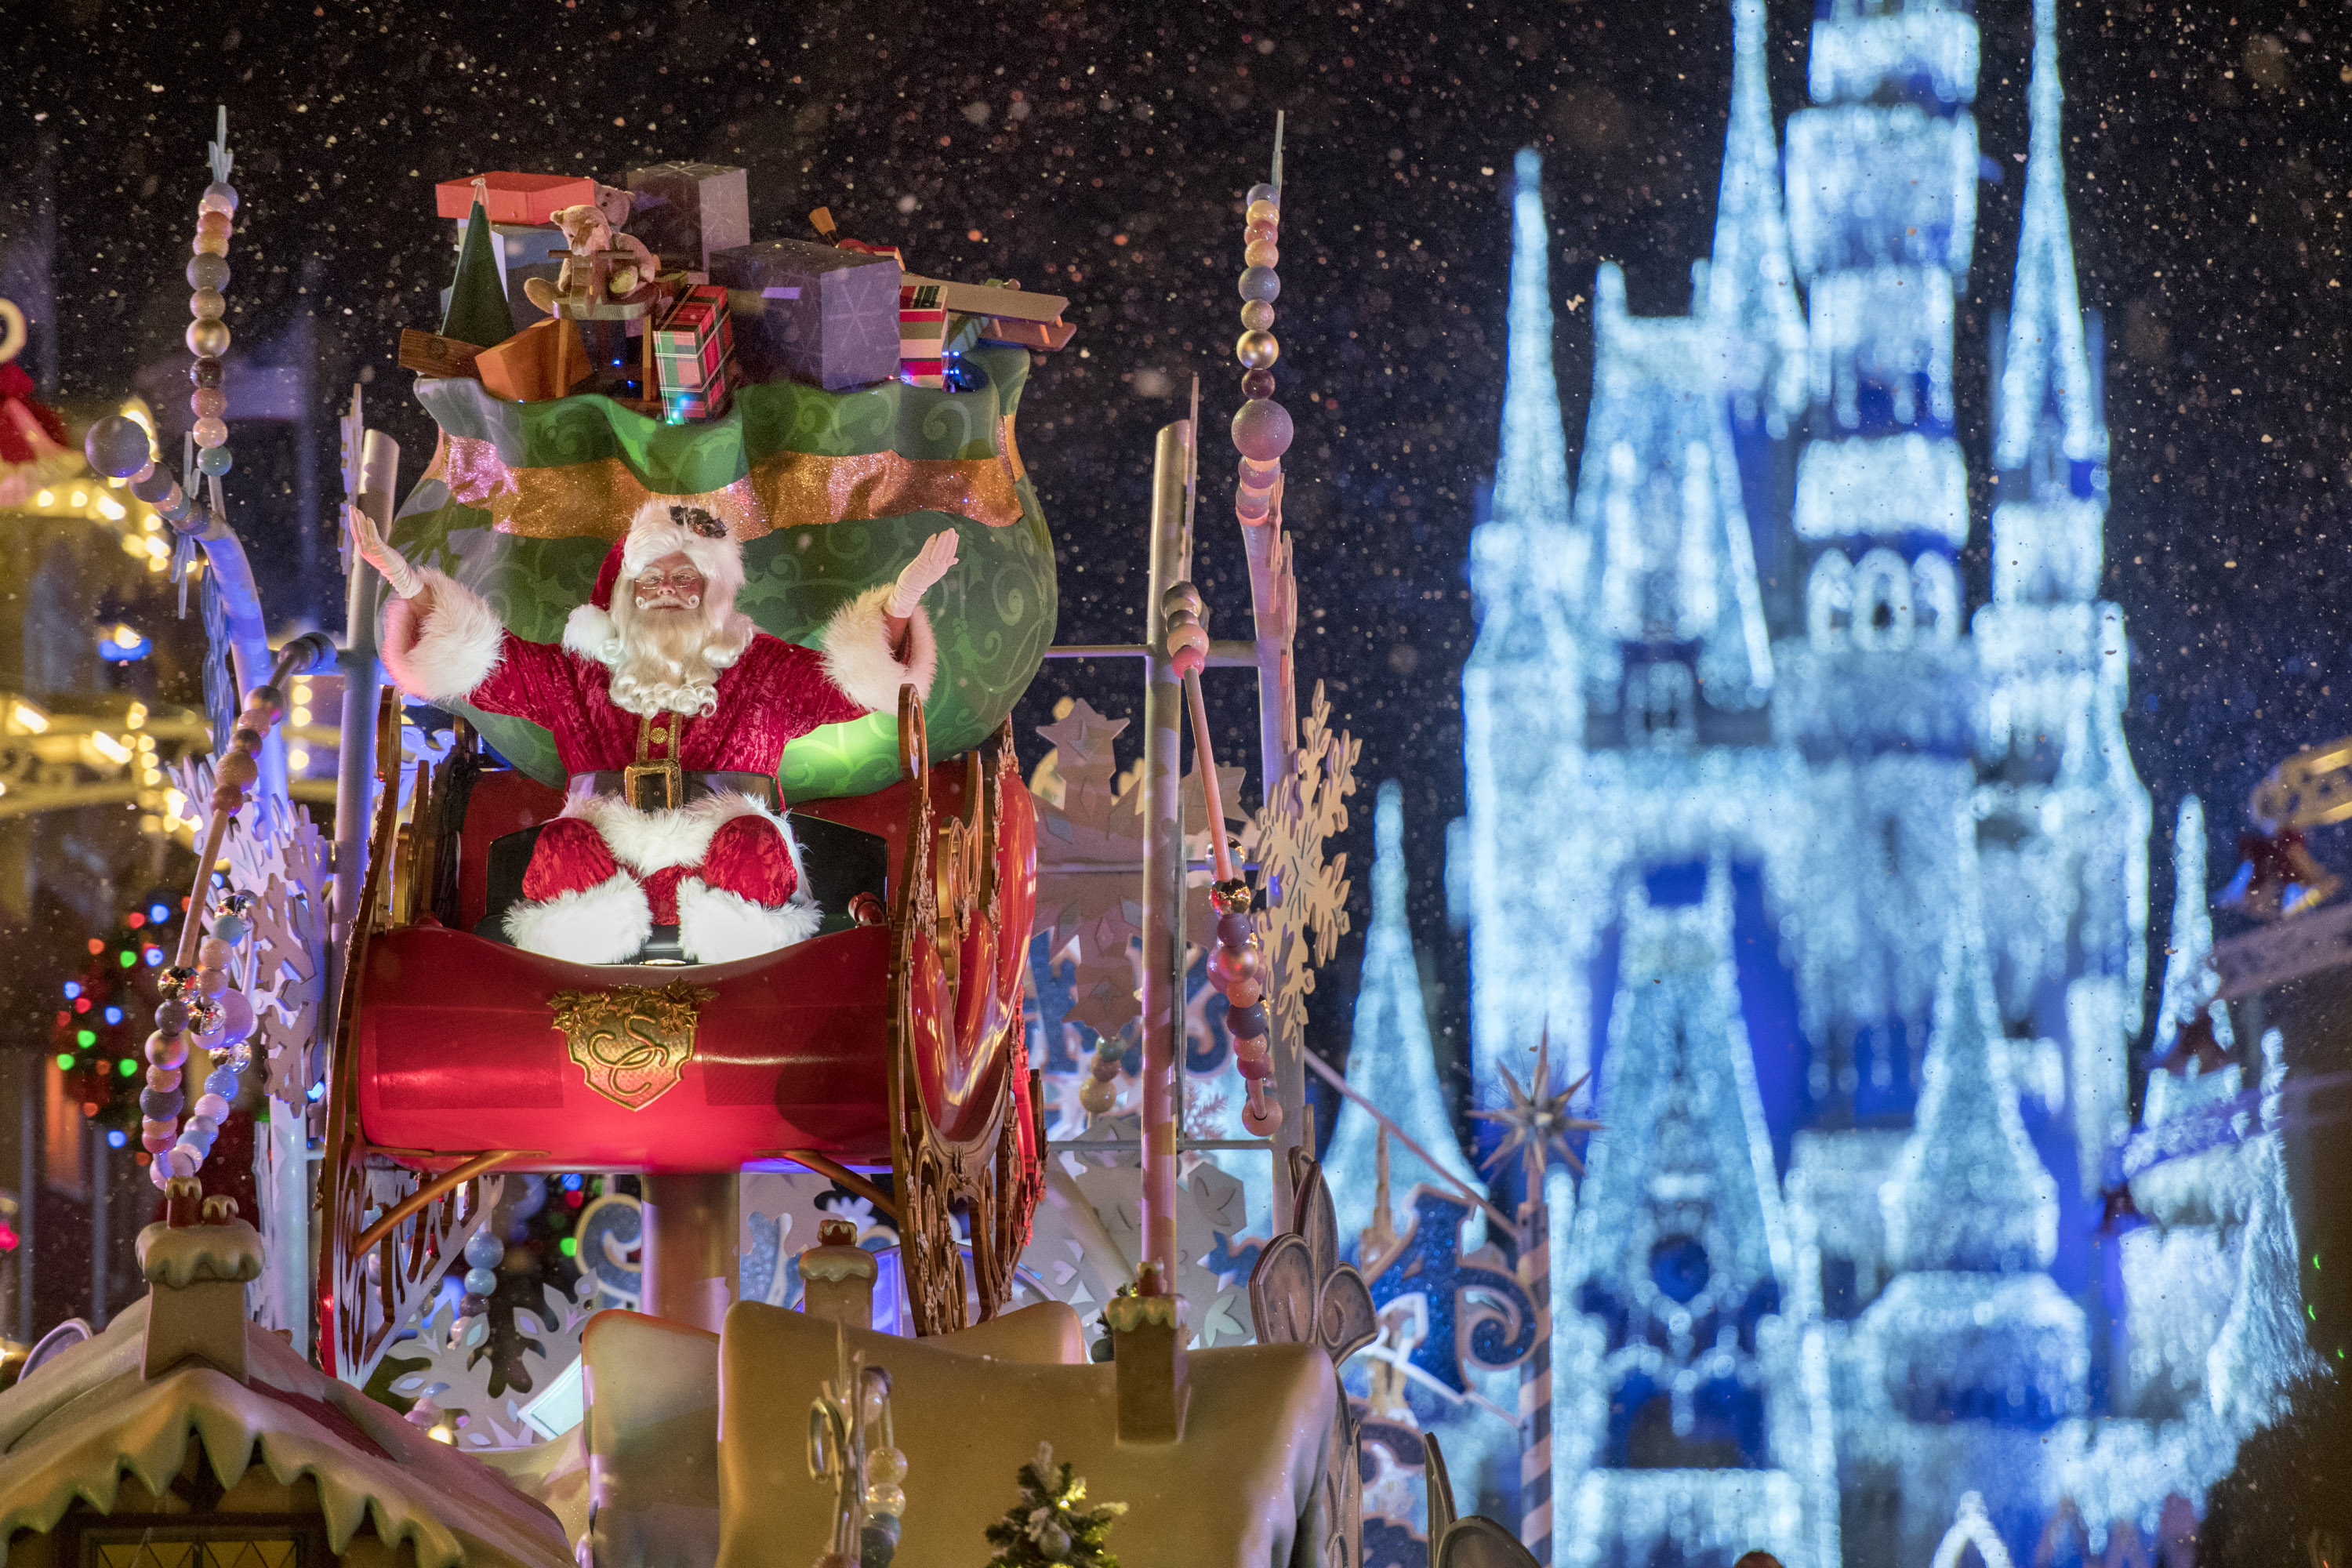 discover even more magic this holiday season at walt disney world resort walt disney world news - Disney World Christmas Decorations 2017